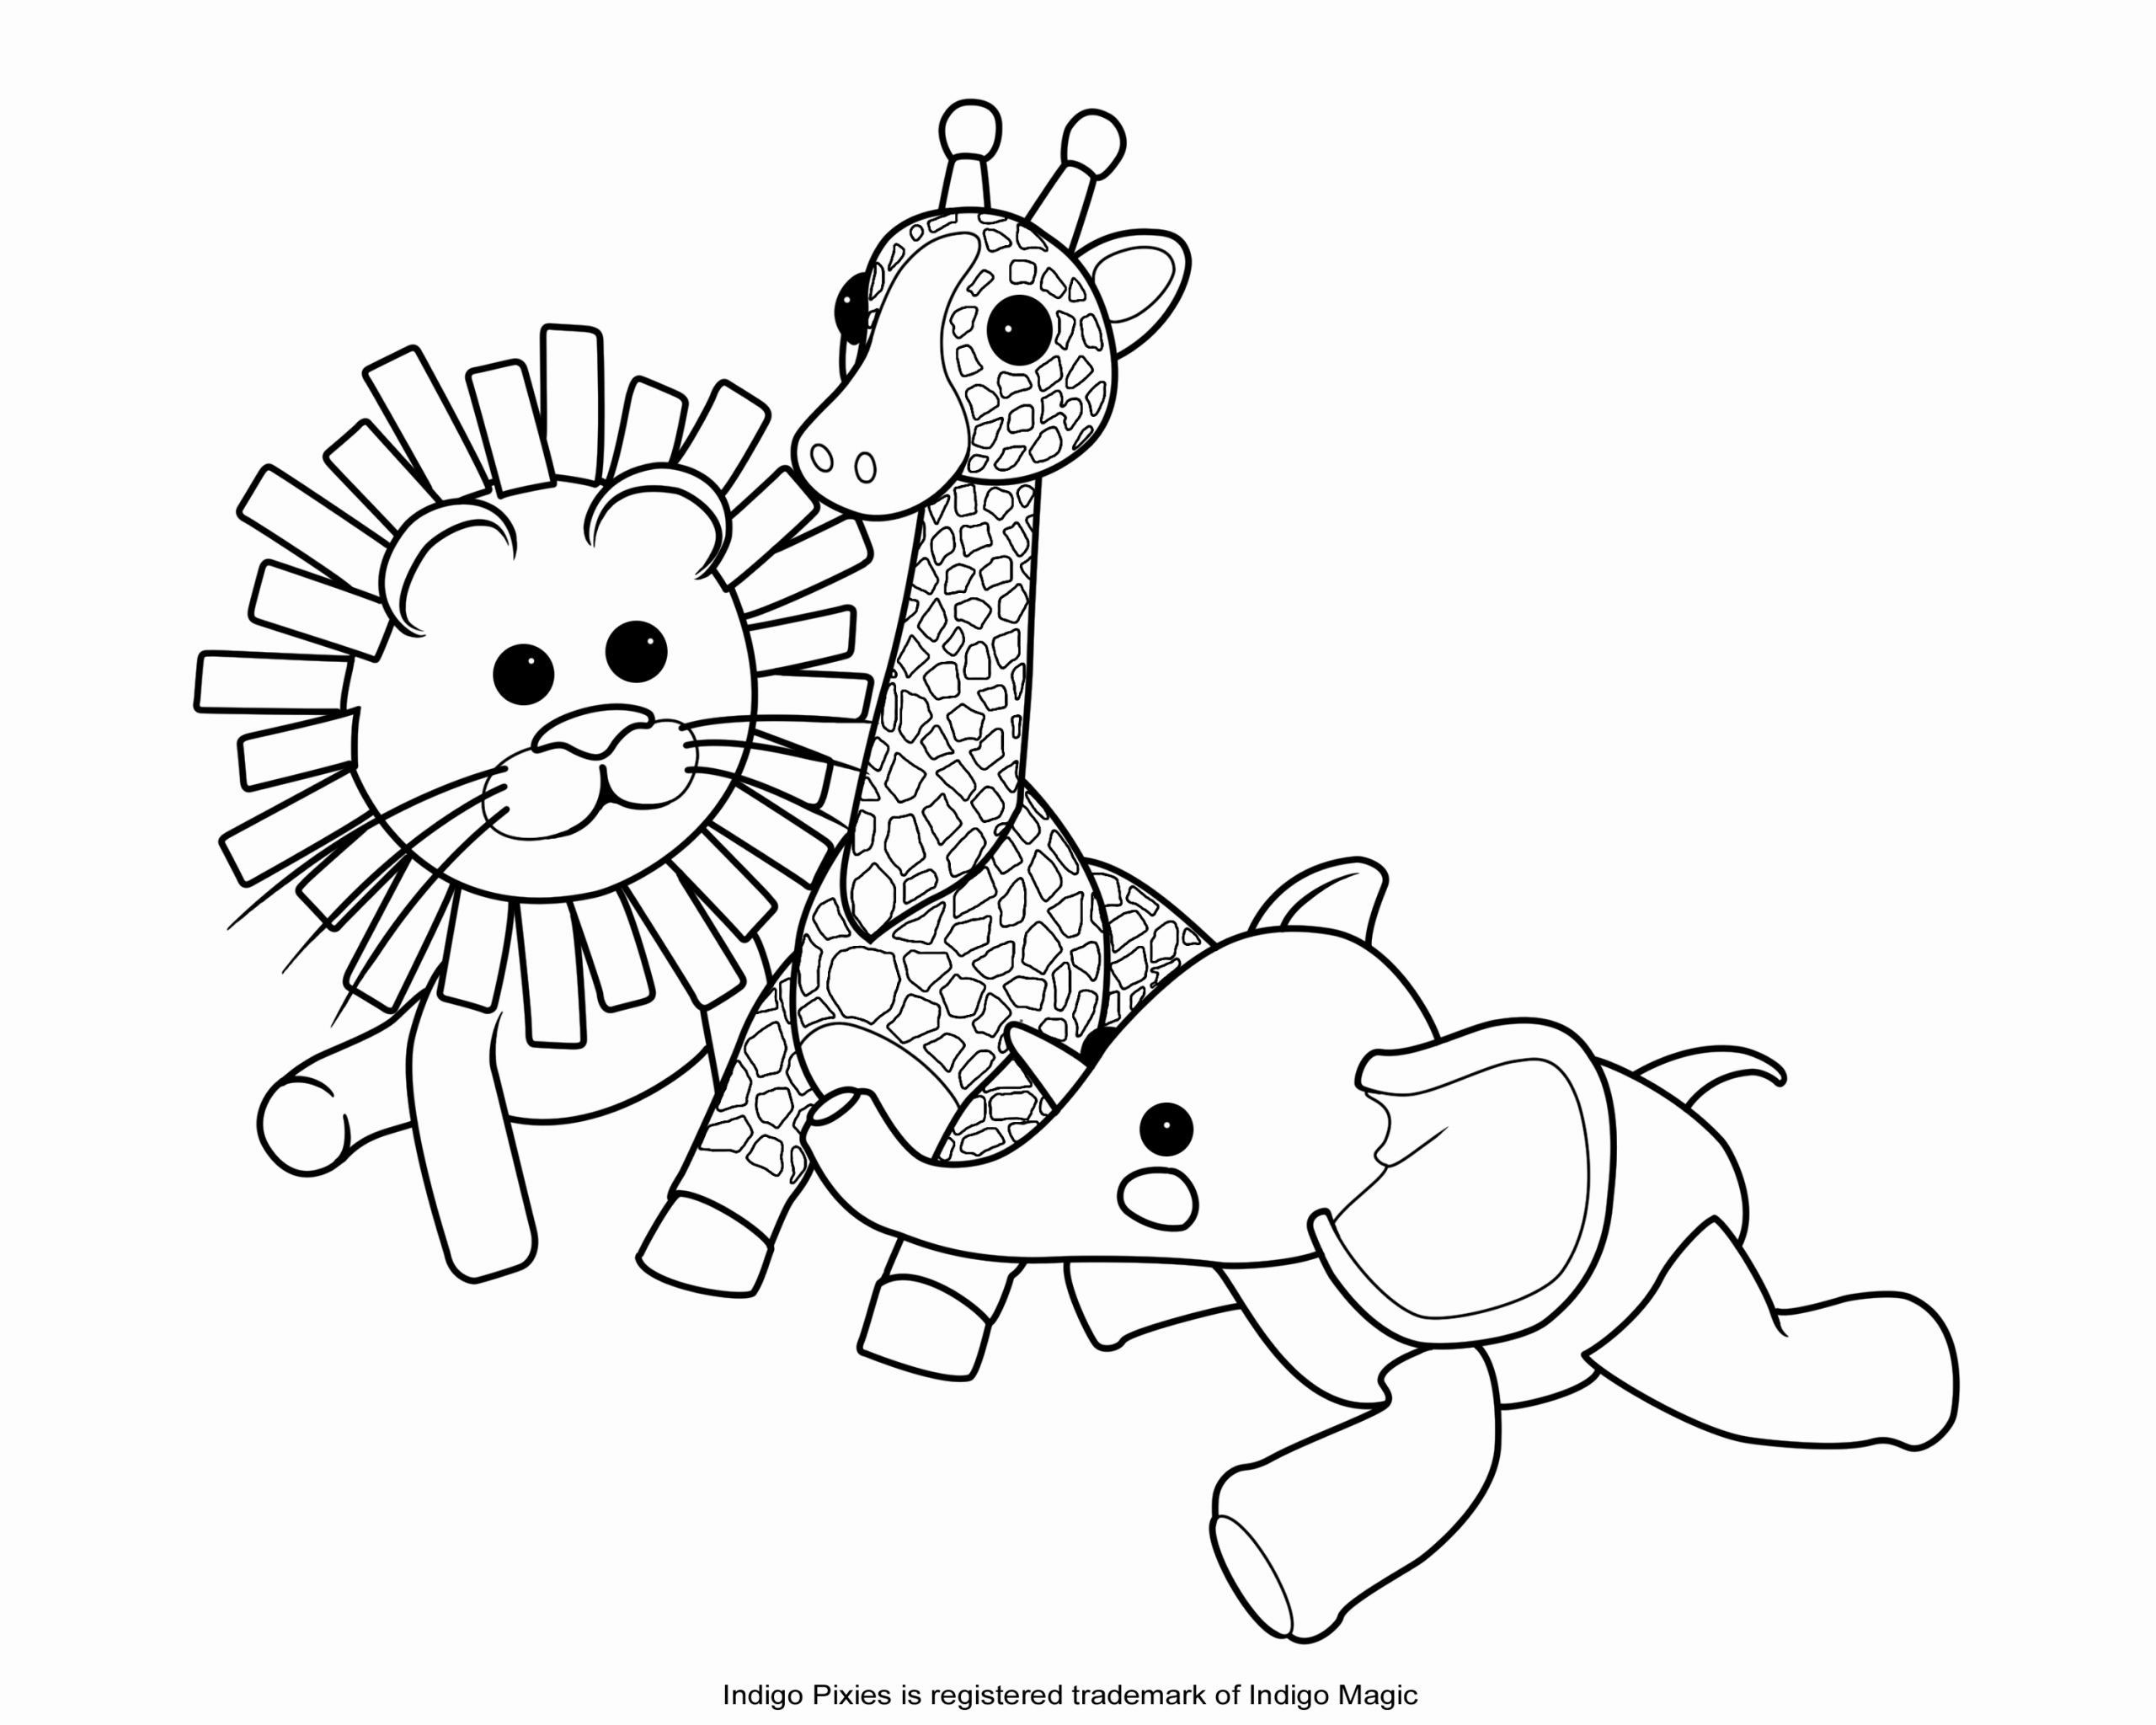 Stuffed Animal Coloring Pages Awesome Usain Bolt Coloring Pages